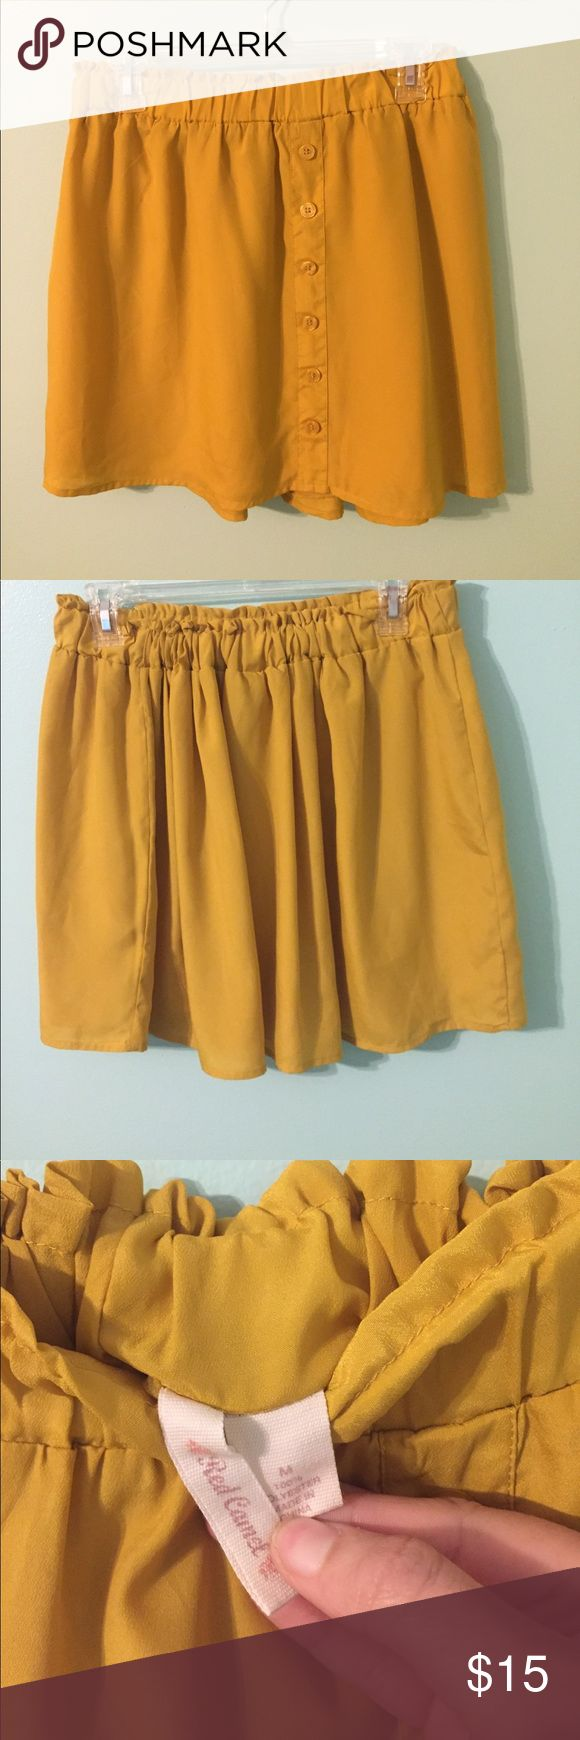 Mustard yellow skirt with faux front buttons Mustard yellow red camel skirt with faux front buttons. Has an elastic waste band. Red Camel Skirts